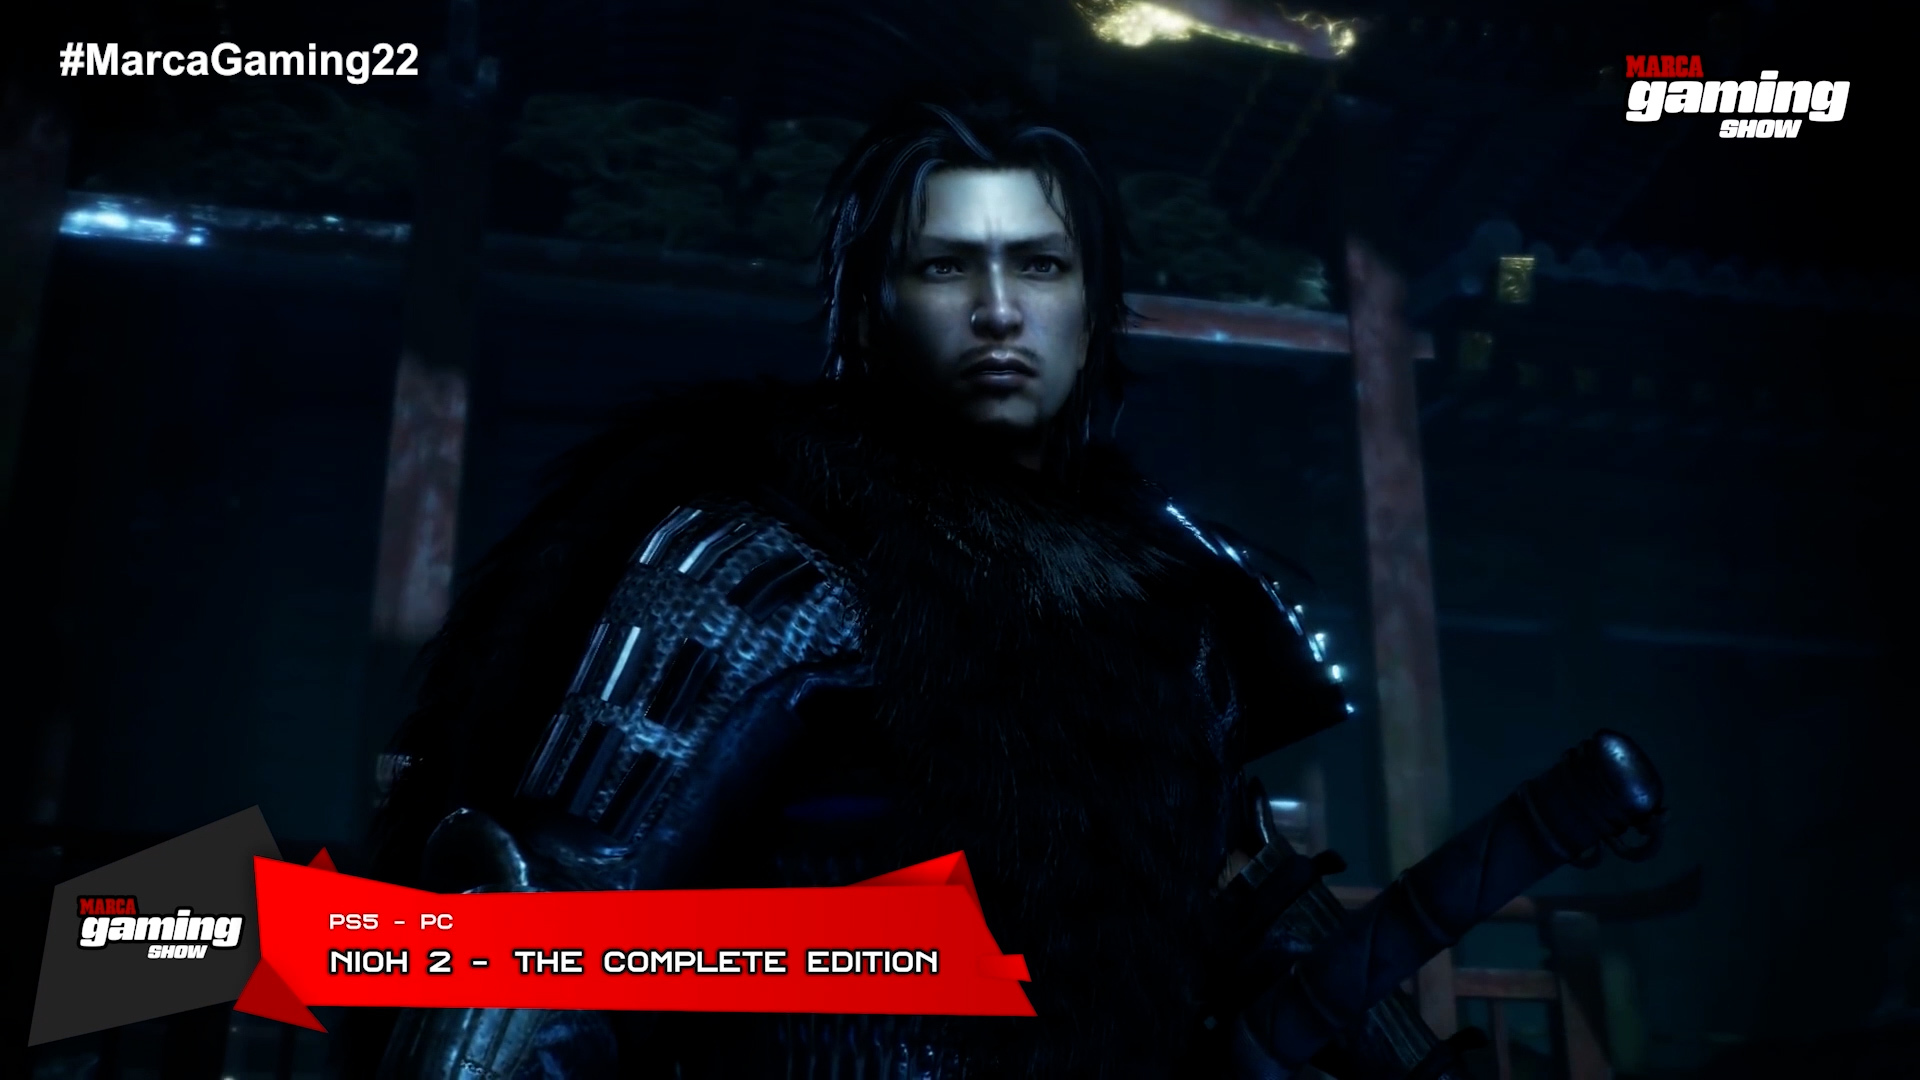 Nioh 2 - The Complete Edition (PC - PS4 - PS5)